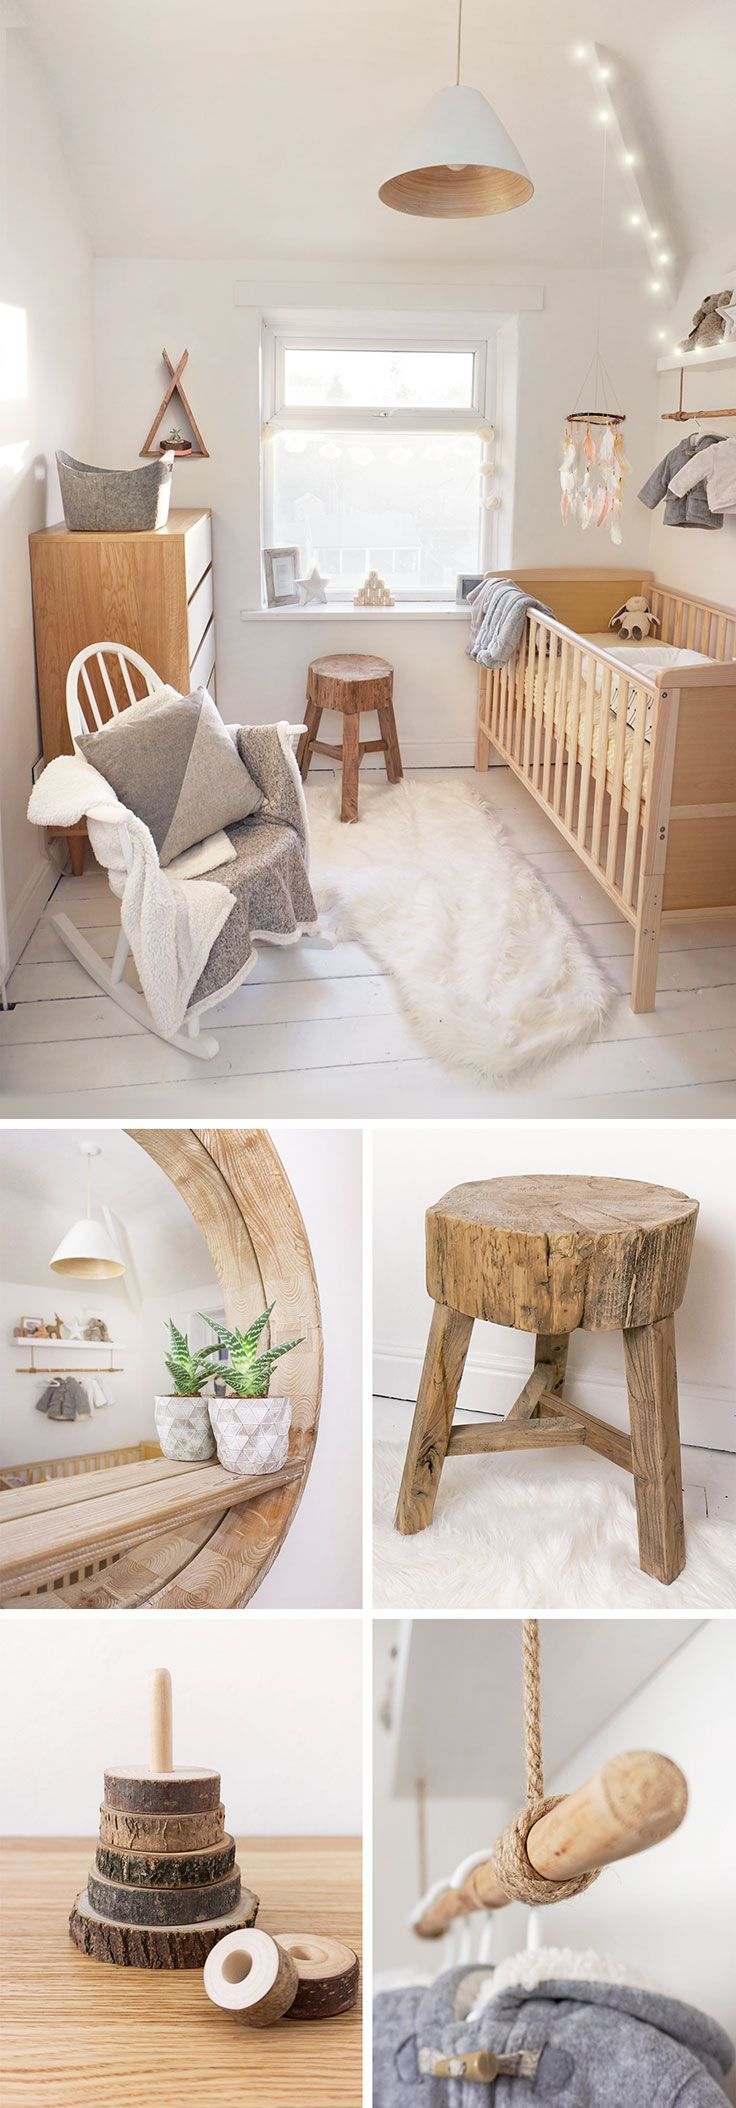 nordic style baby room on pin on home interior decor pinterest